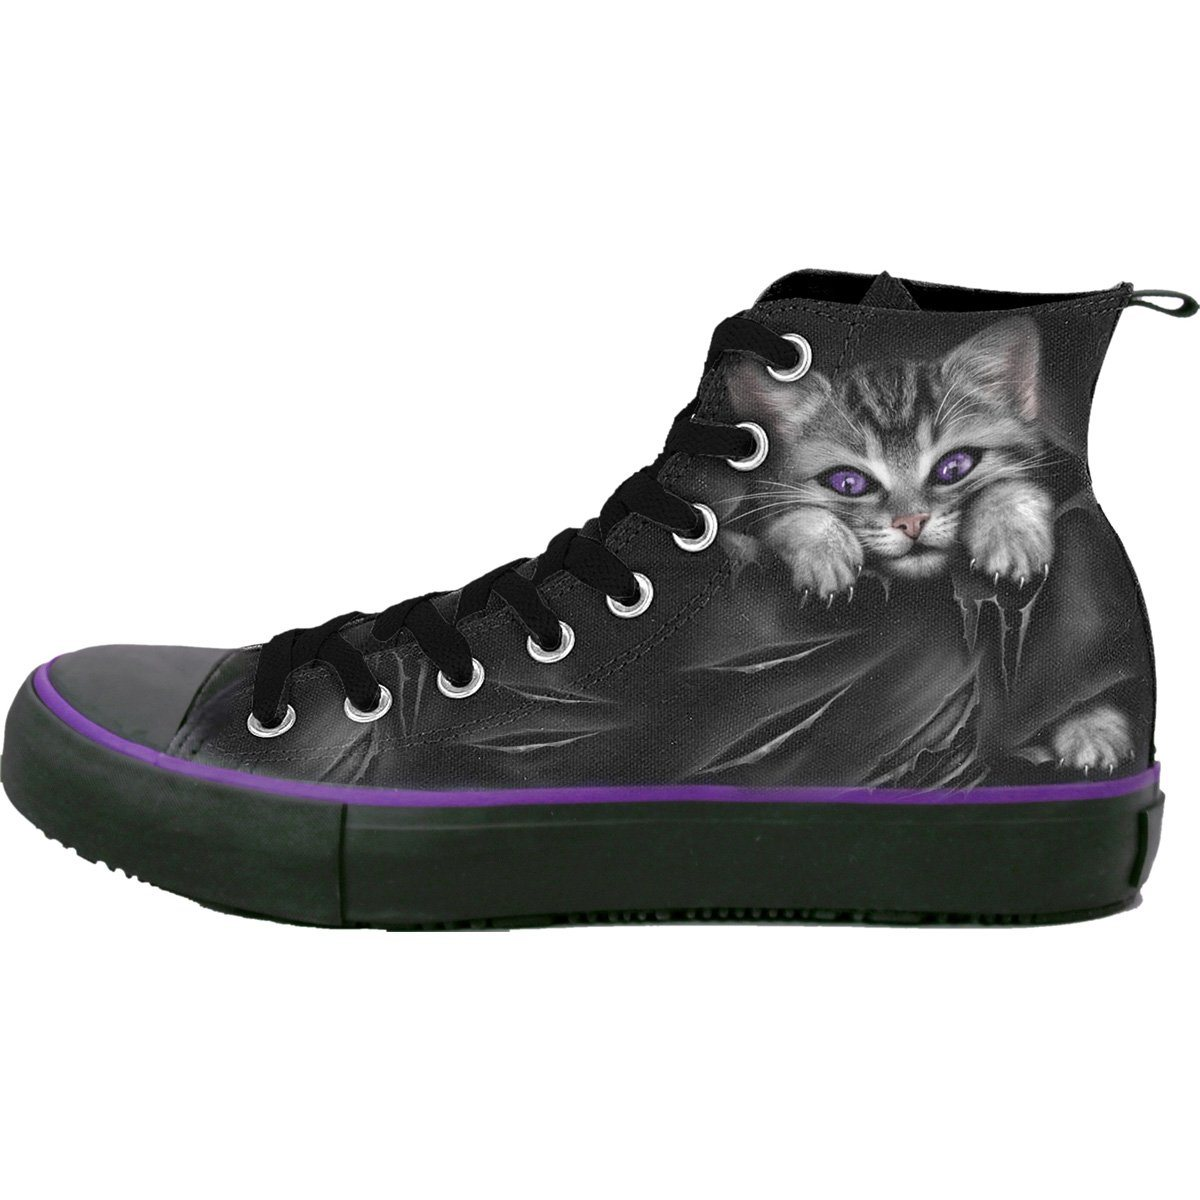 Bright Eyes Women's High-Top Sneakers - Rebels Depot